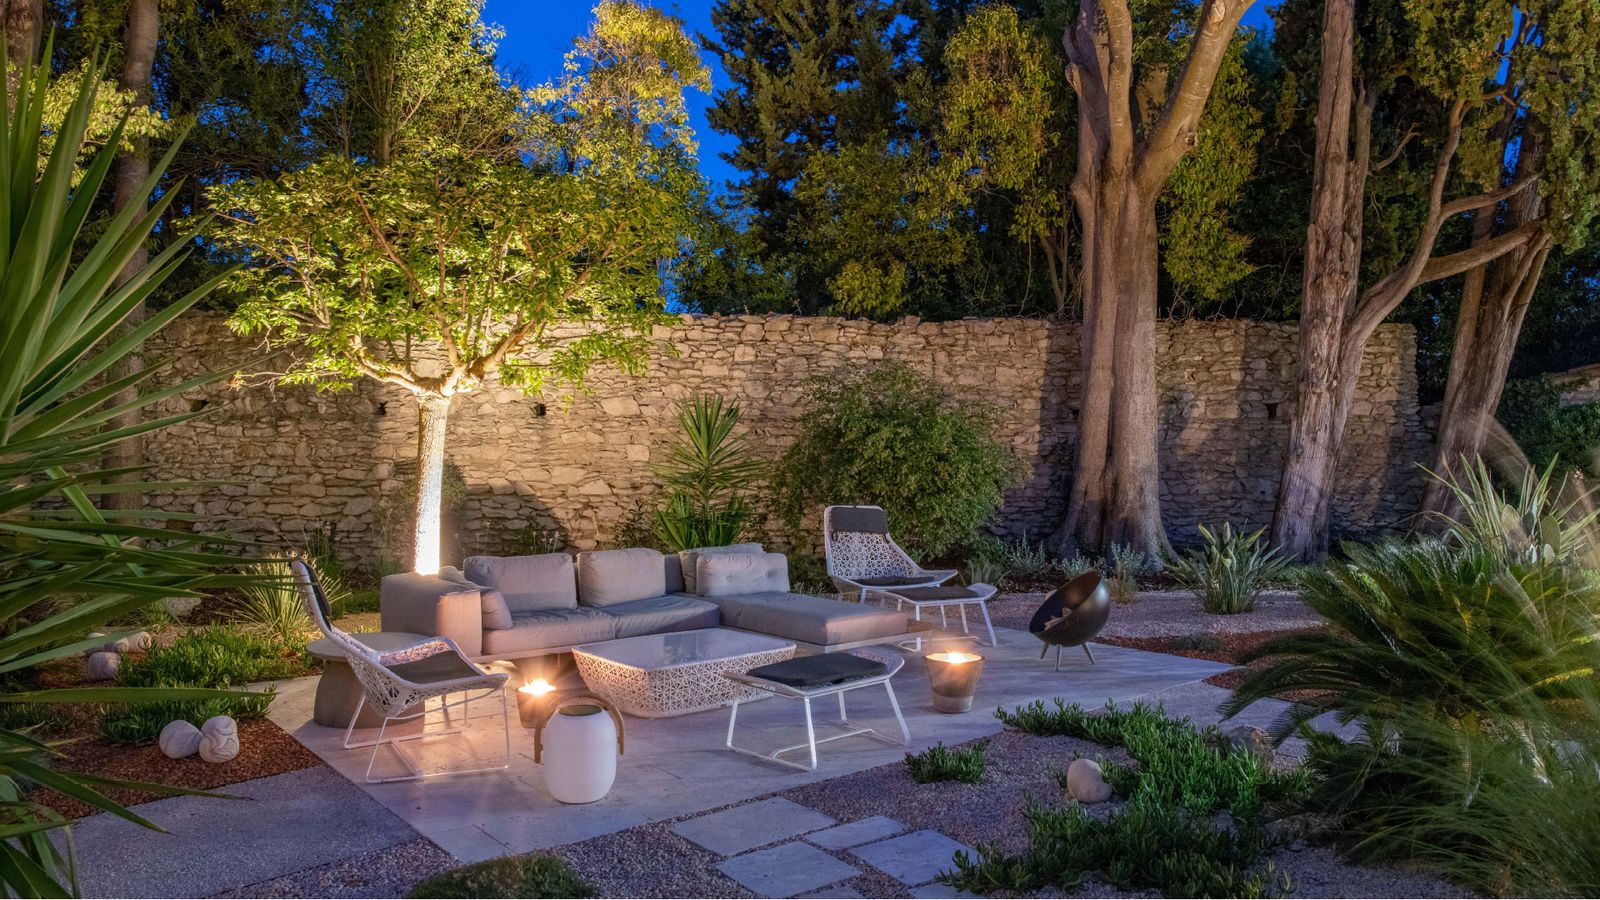 Luxurious house to rent for vacations in Provence with swimming pool